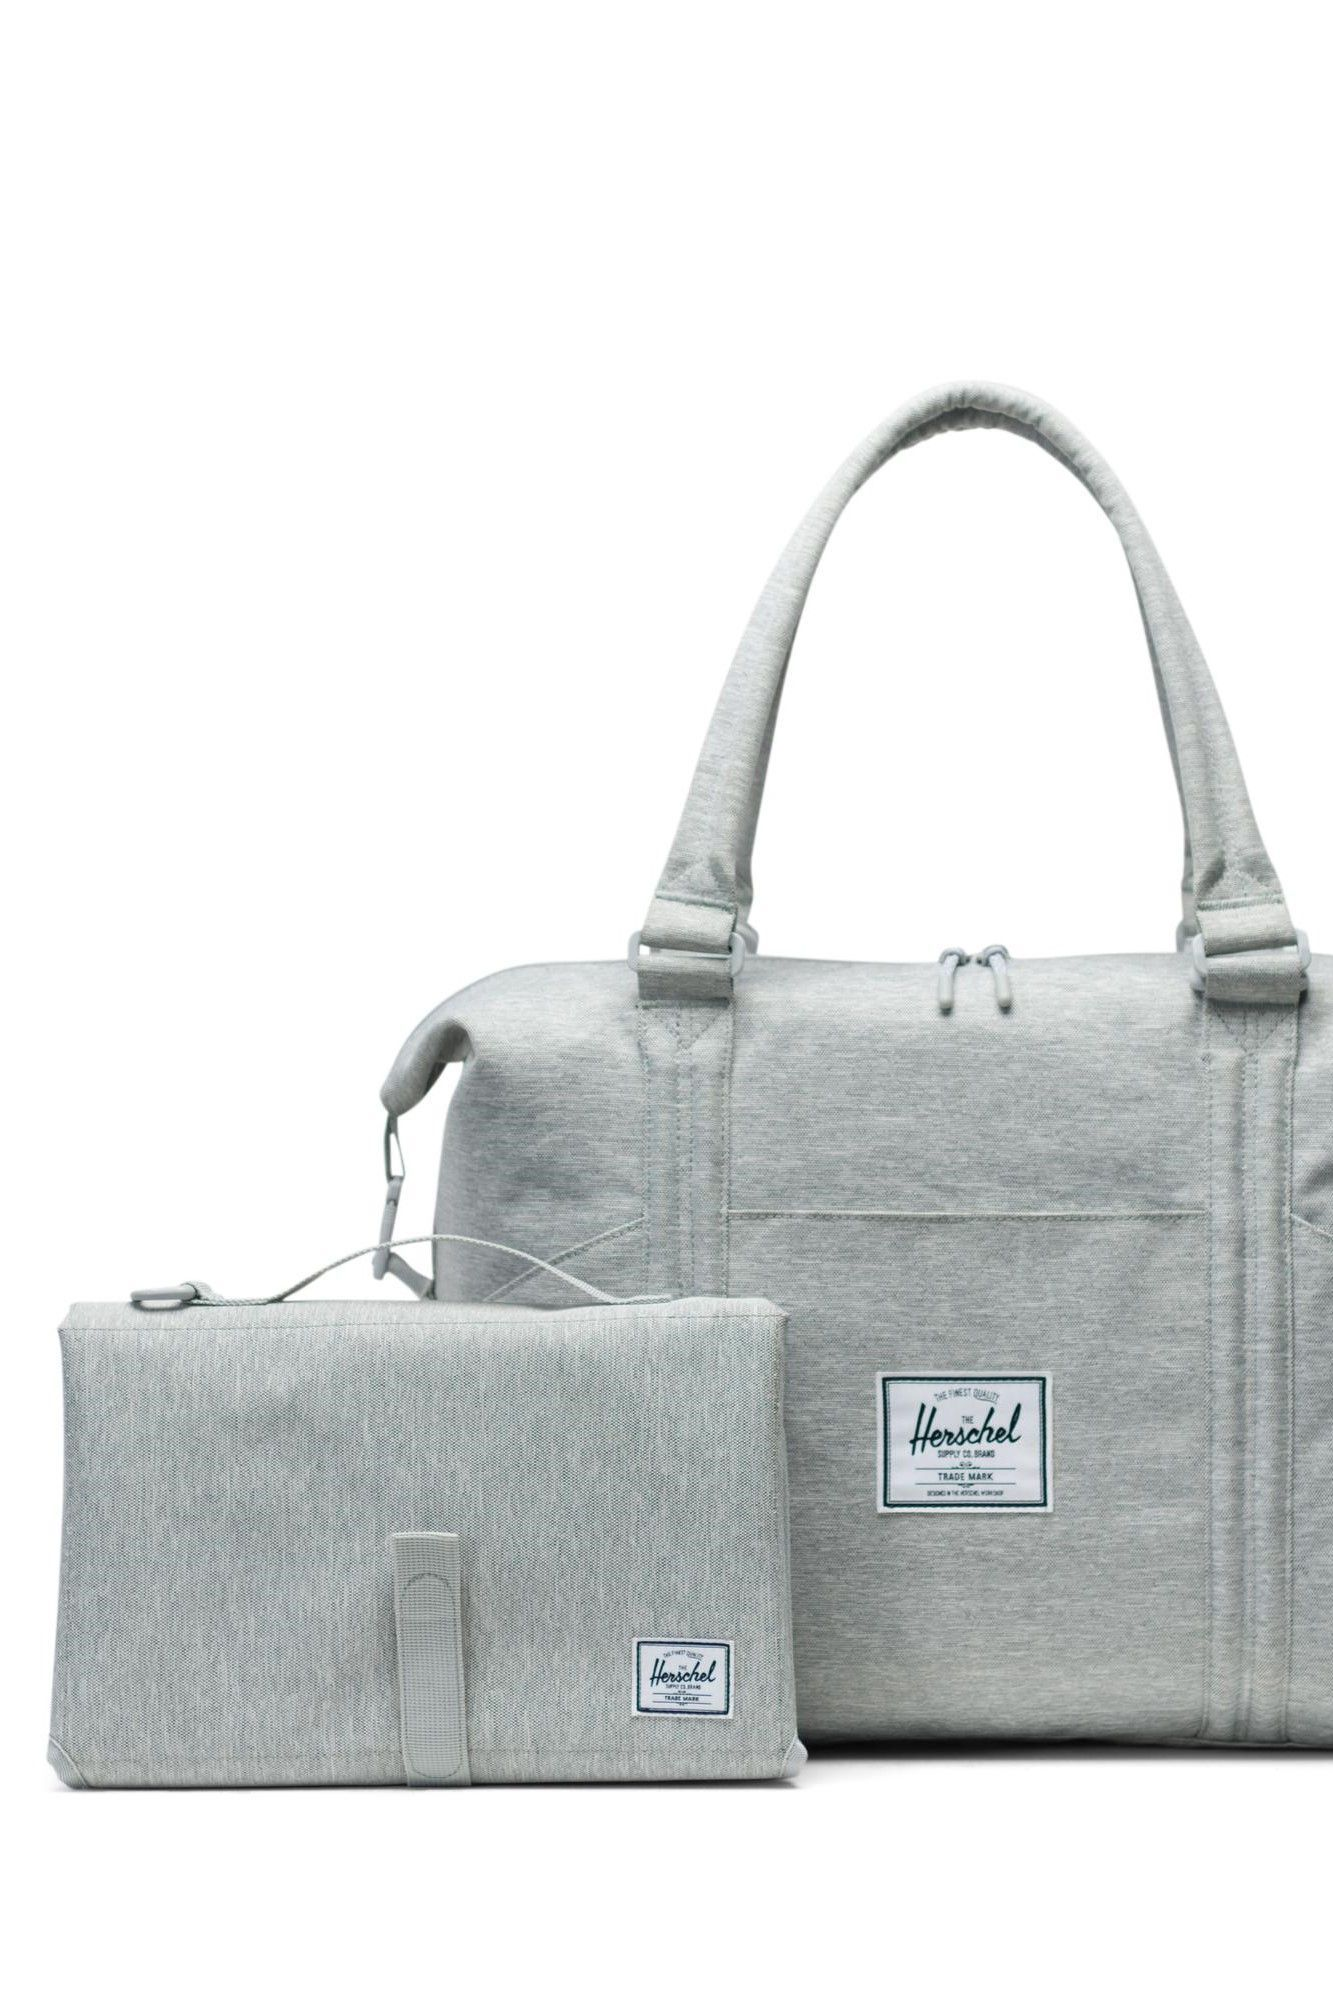 Herschel Strand Sprout Tote Light Grey Little Nomad